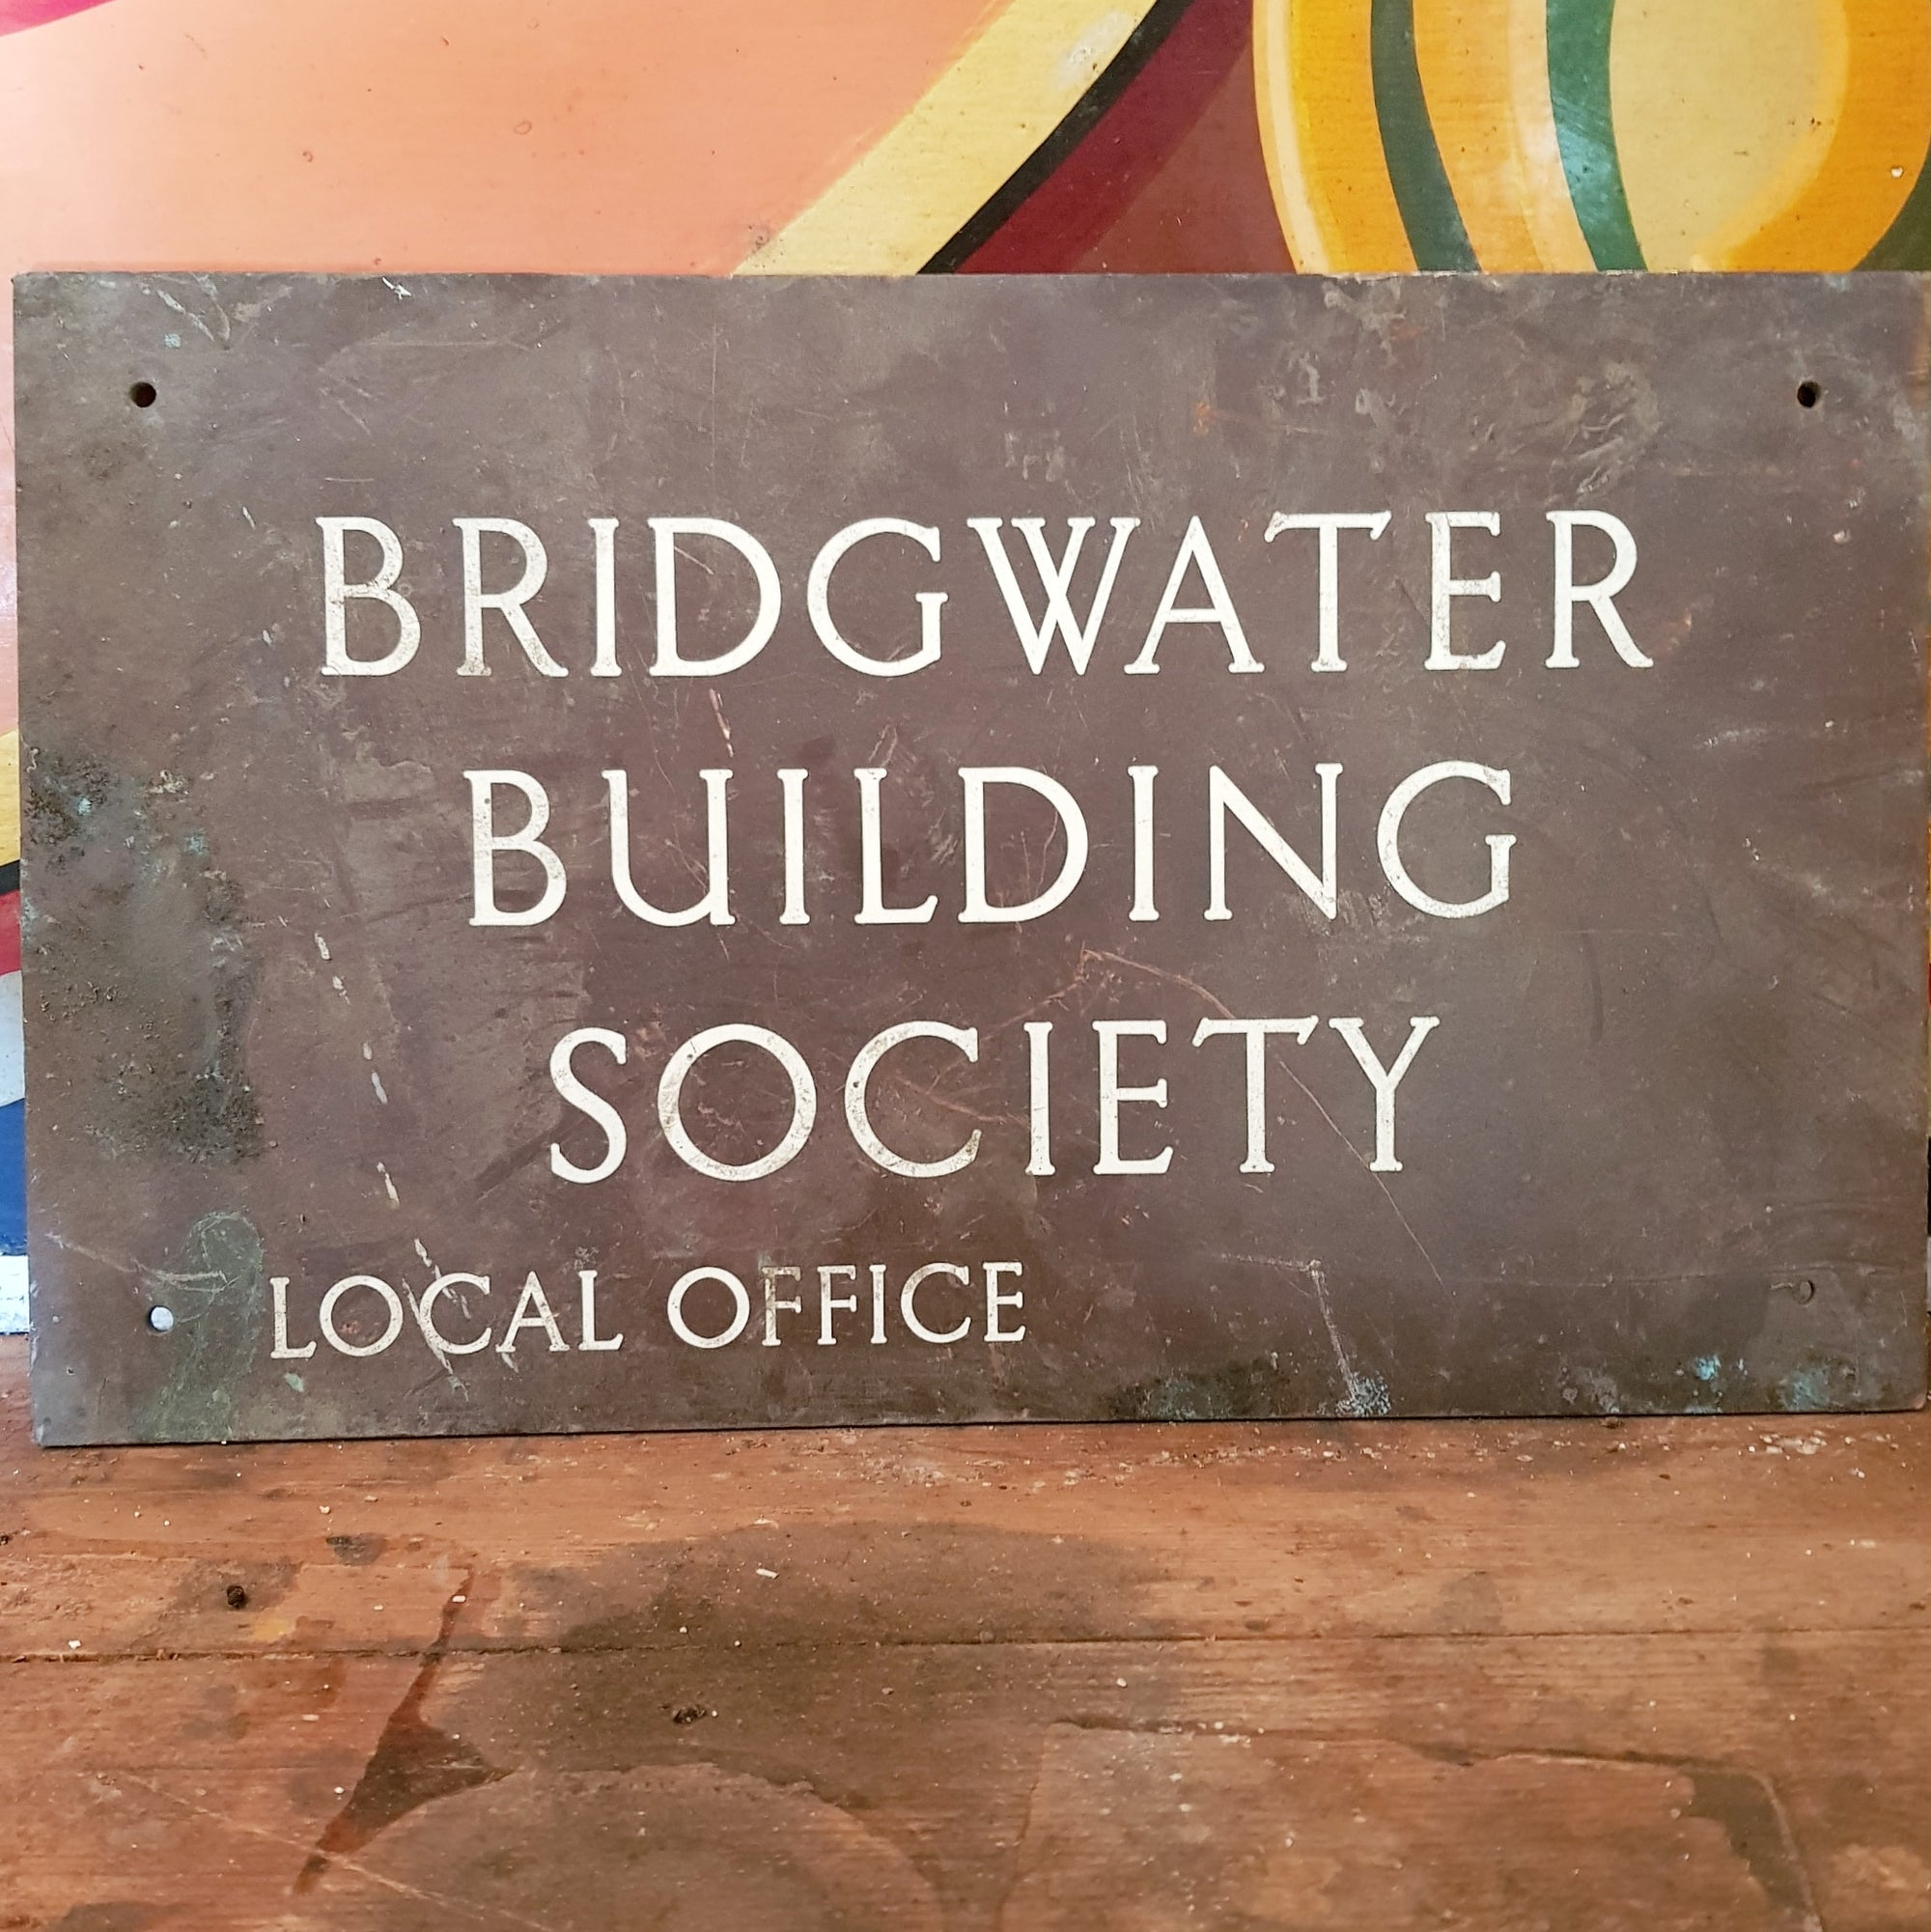 Bridgwater Building Society